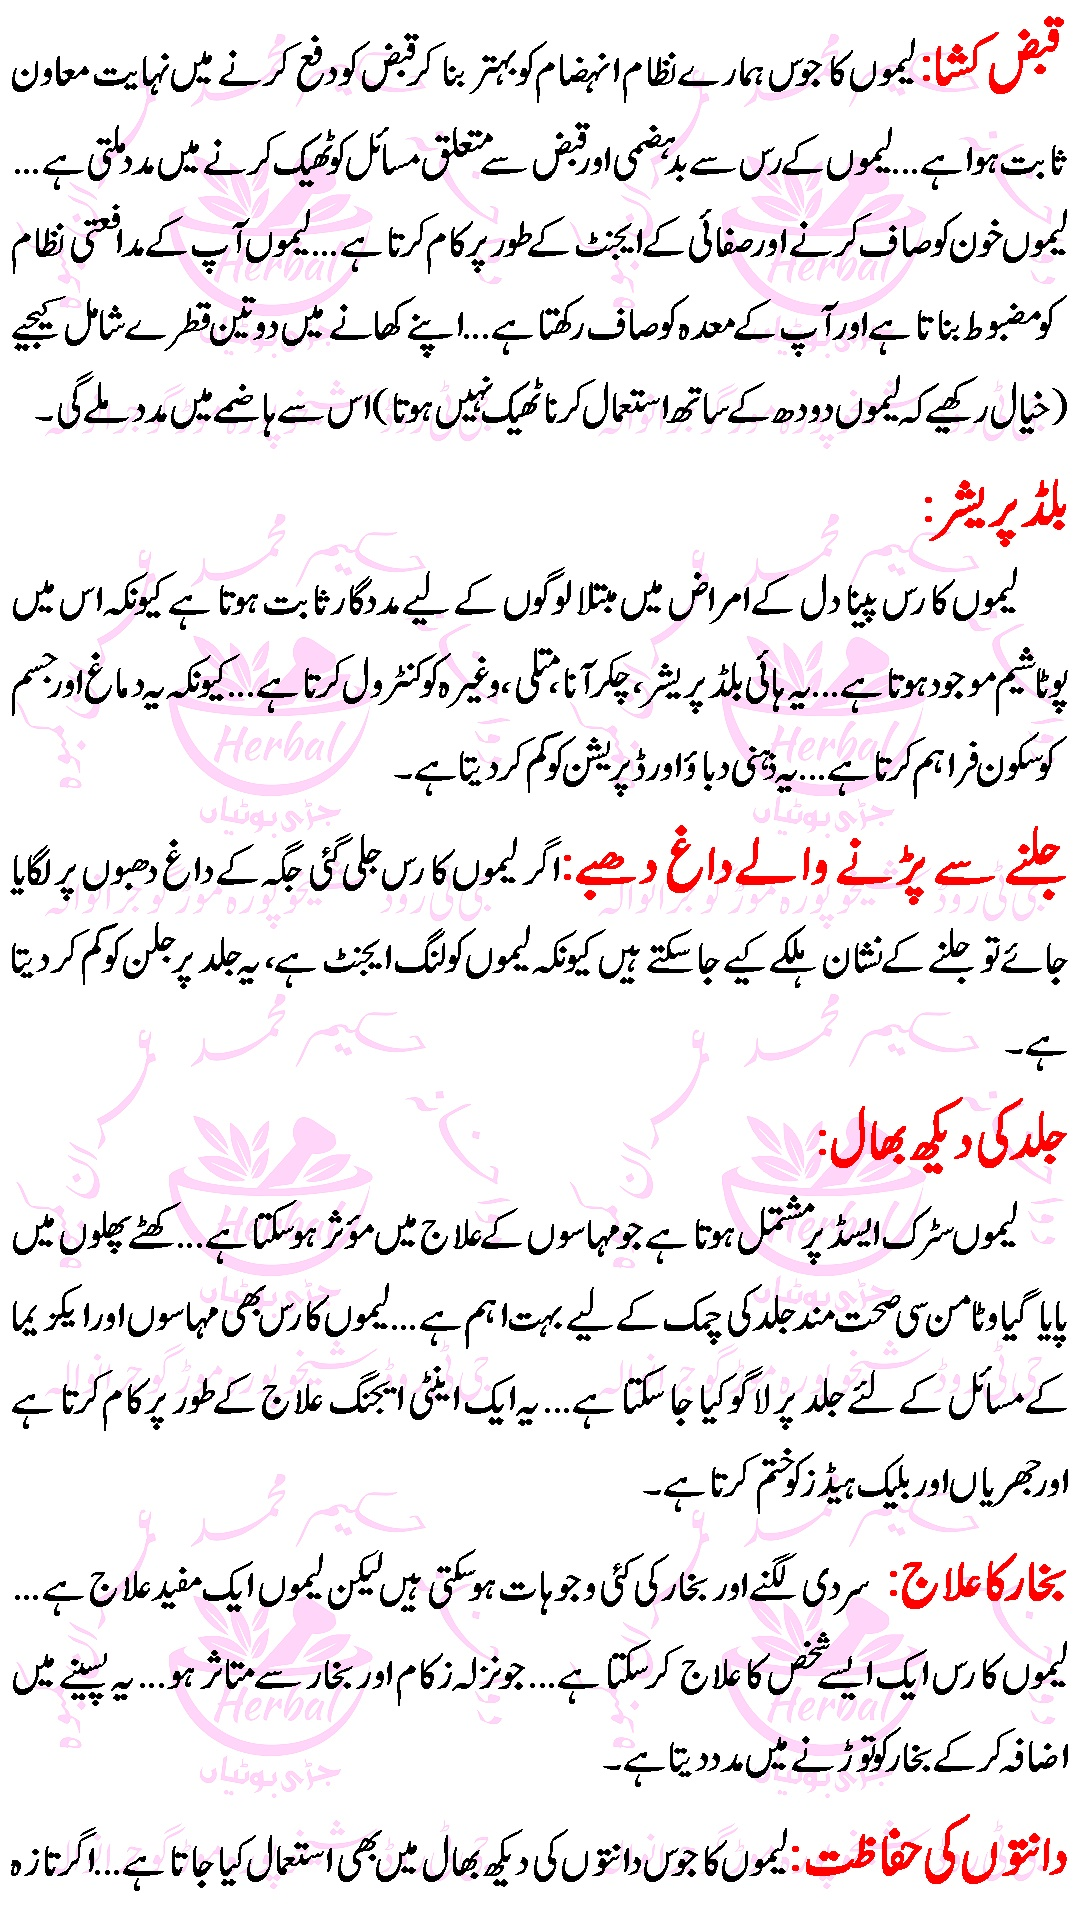 Benifits Of Lemon ( Lemoun K Faidy) In Urdu(2)